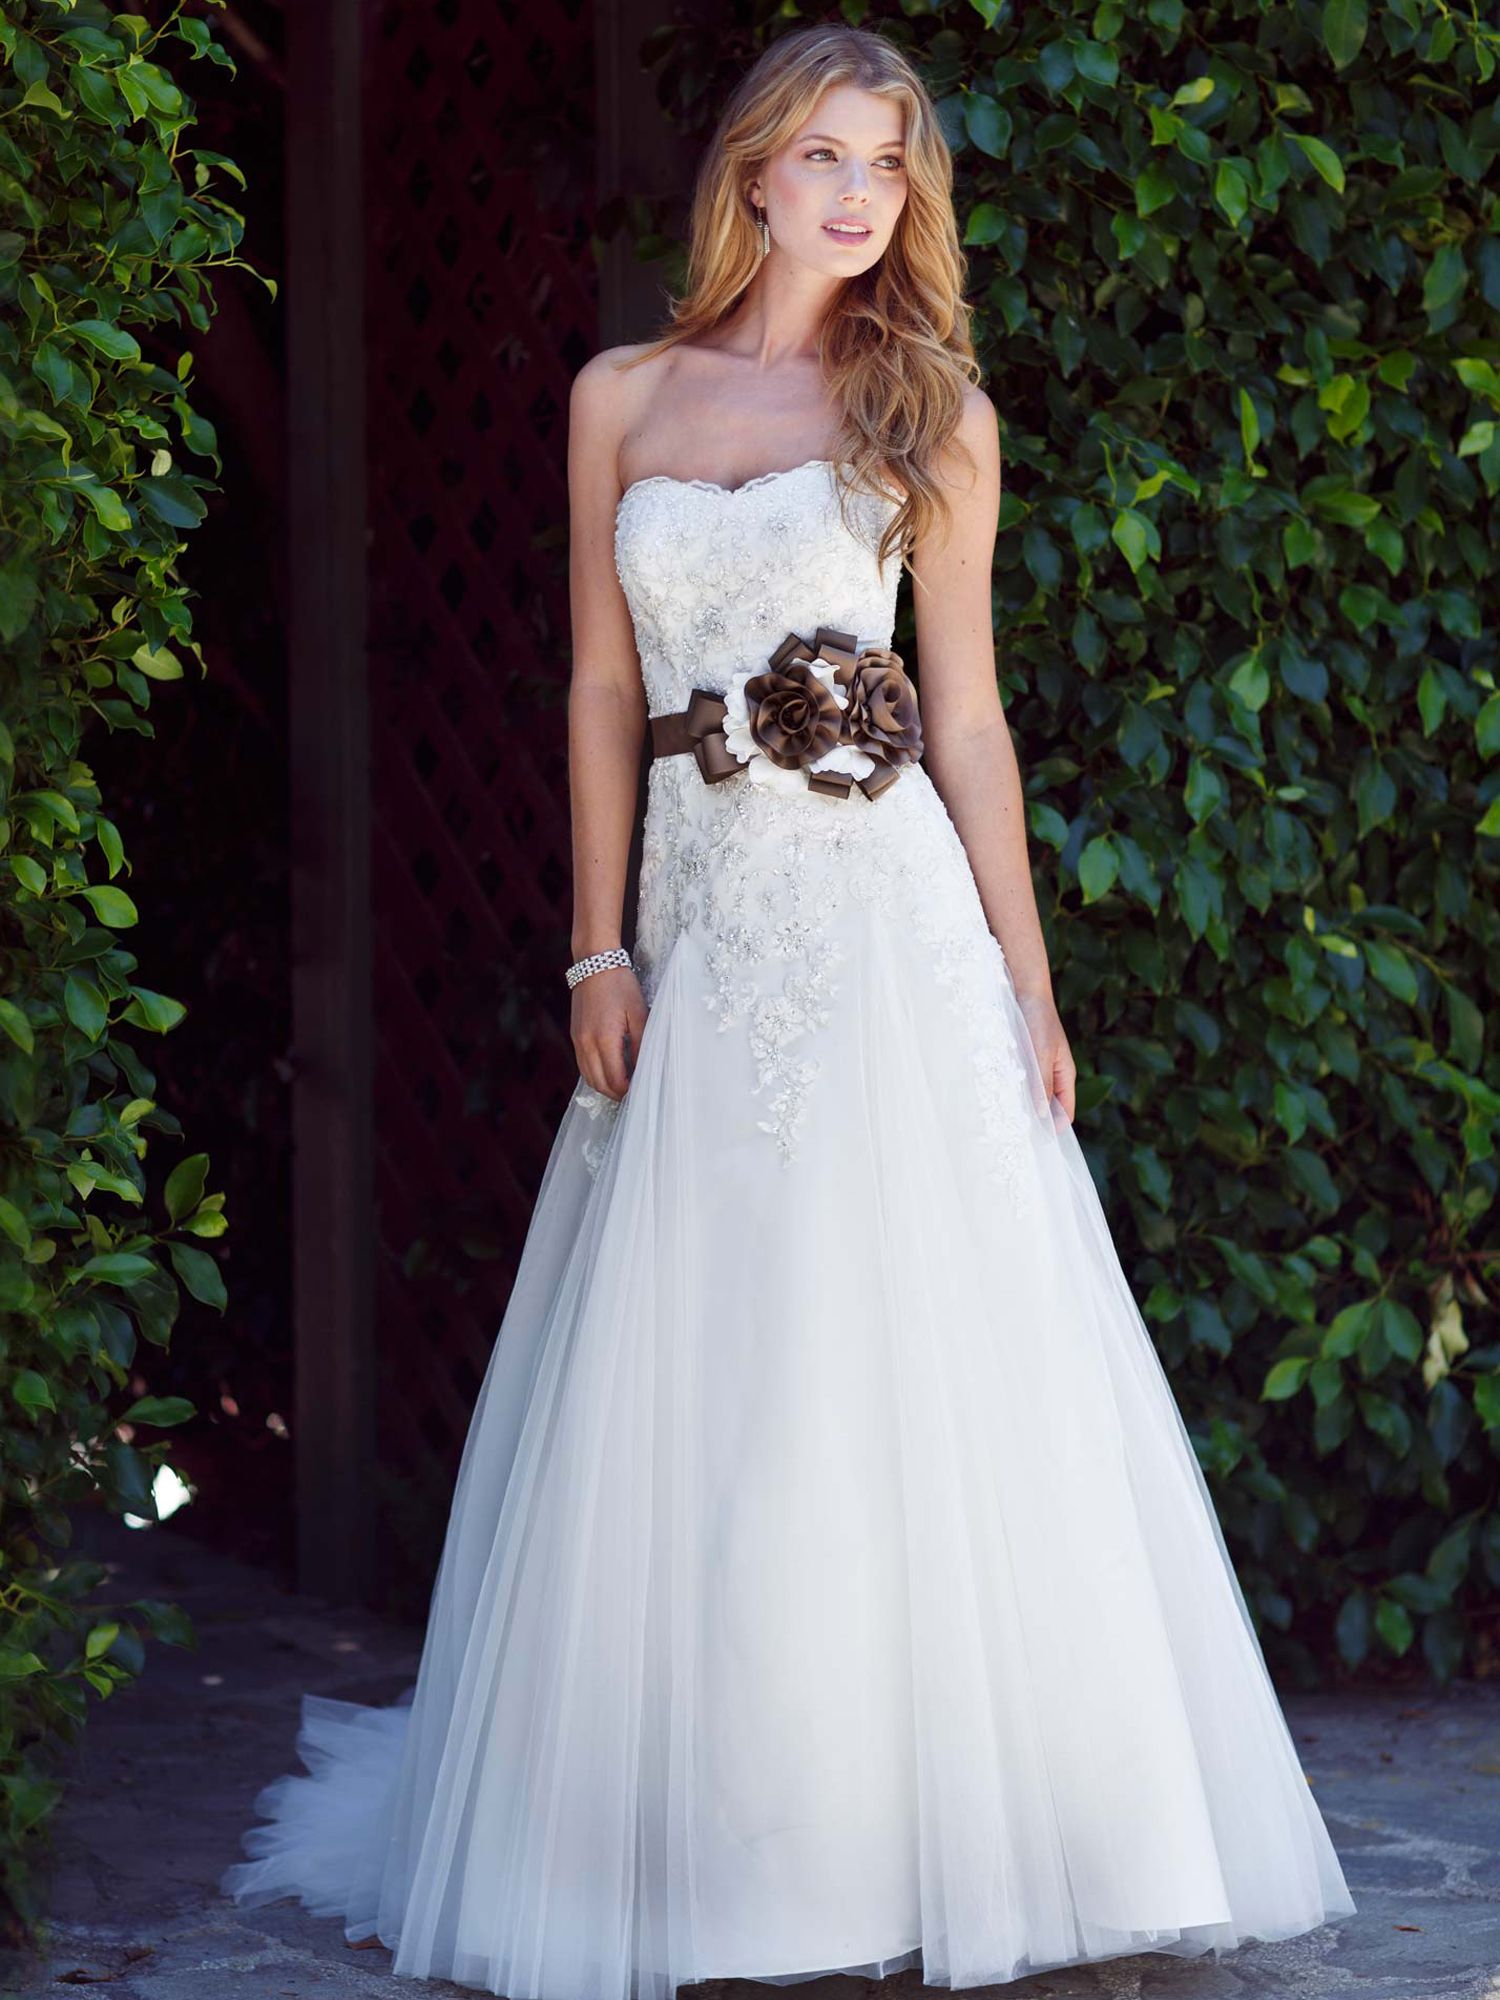 Available at rebeccas bridal boutique north syracuse ny www kenneth winston wedding dresses style 1498 would be really pretty wo the ugly sash replace with rhinestone sash ombrellifo Choice Image